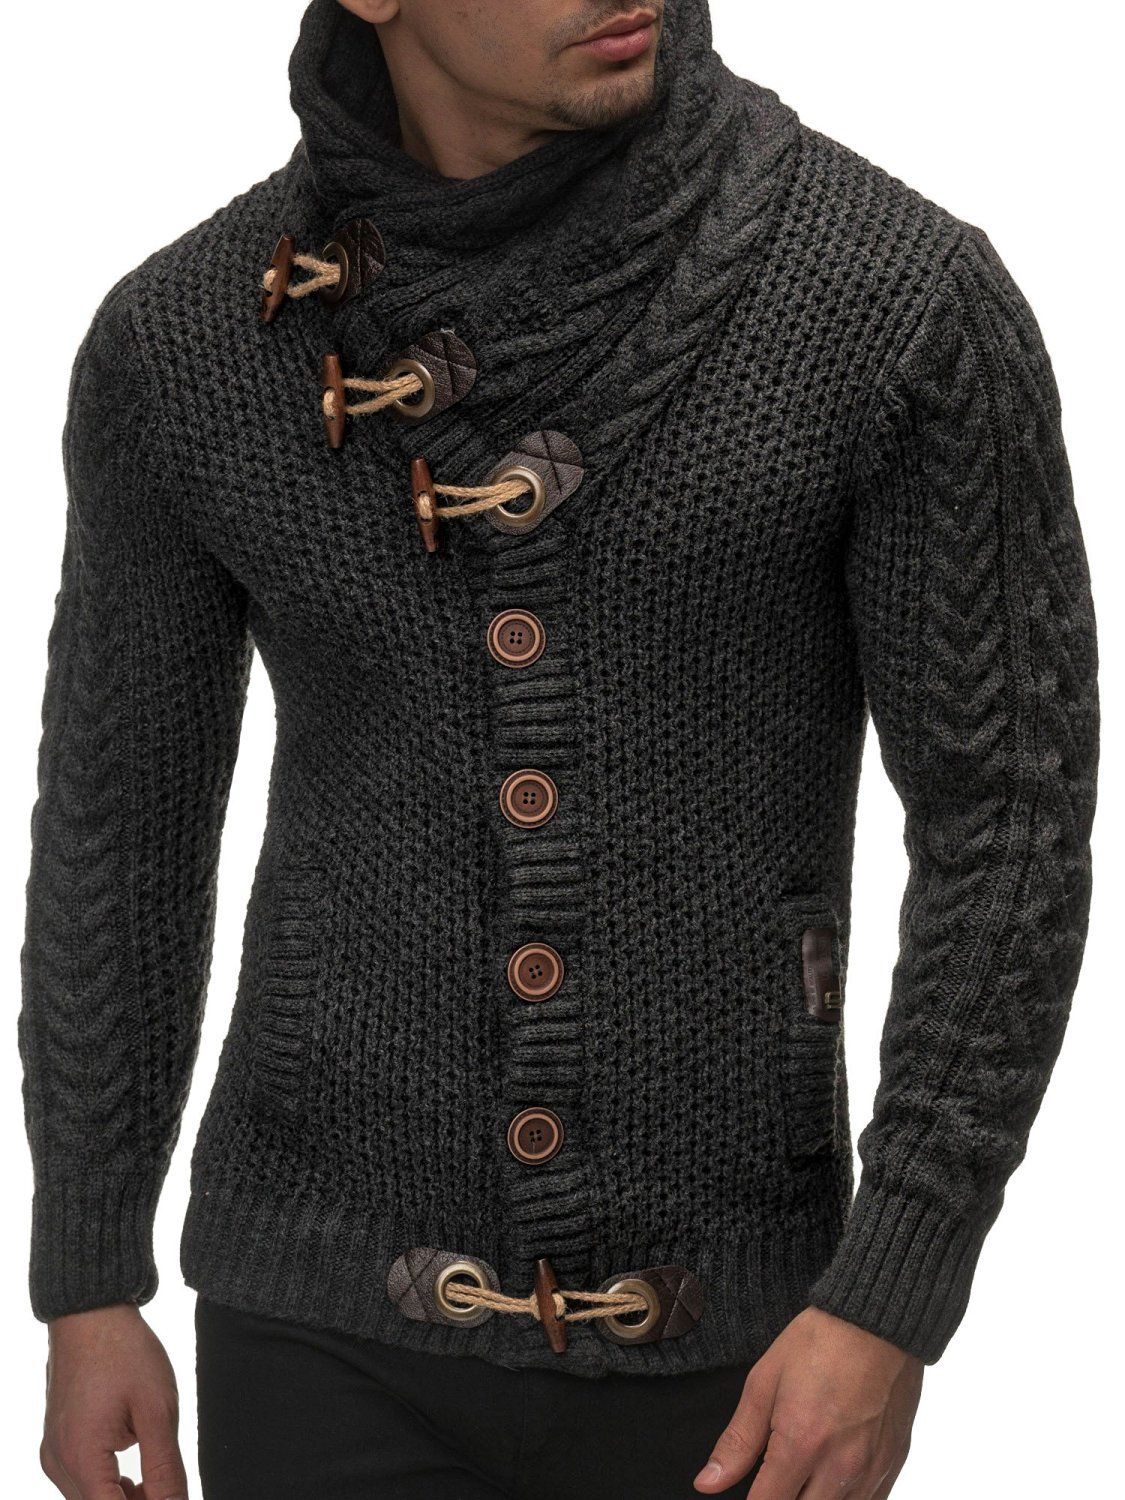 LEIF NELSON Men's Knitted Jacket Cardigan X-Large Anthracite ...